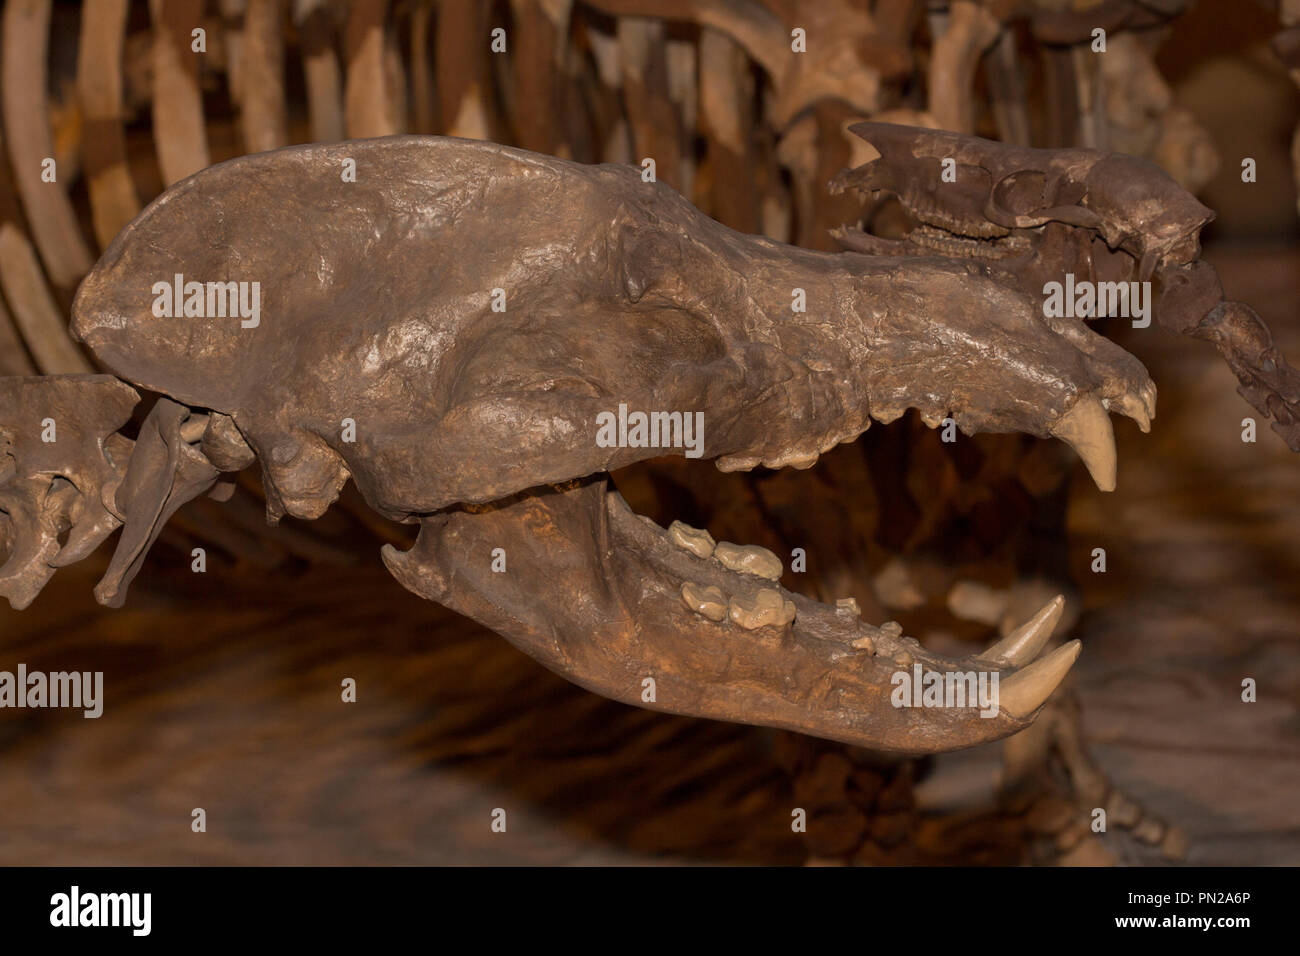 Fossil skull of a Giant Bear-Dog, Amphicyon longiramus, 18 million years old from the Miocene period. - Stock Image